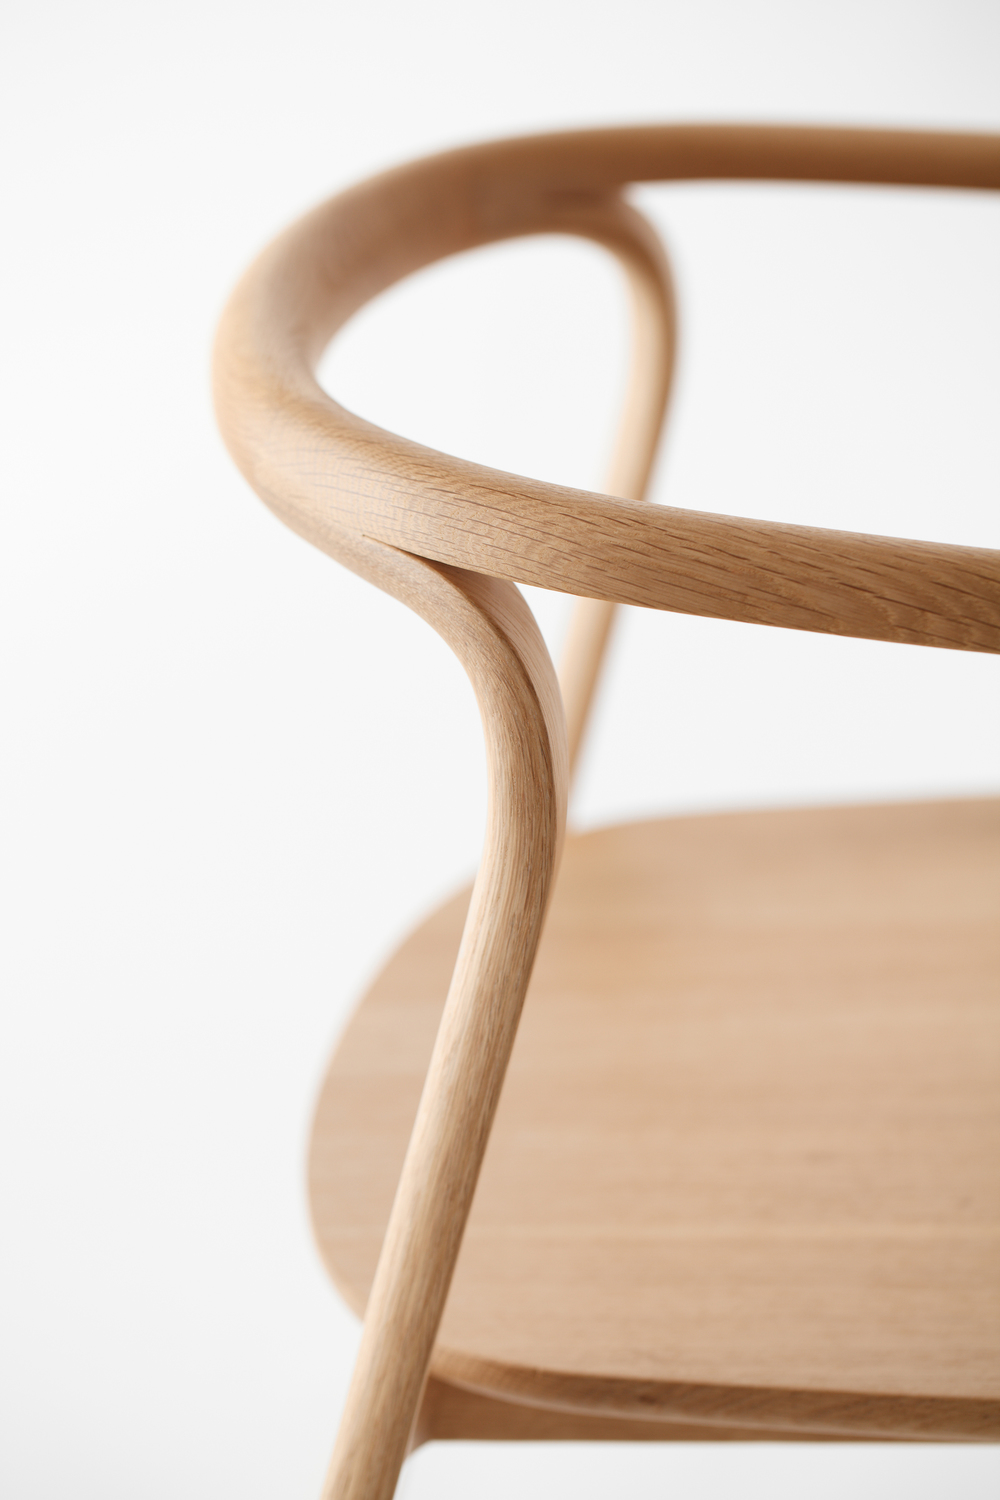 Nendo - Splinter Armchair - 2.jpg